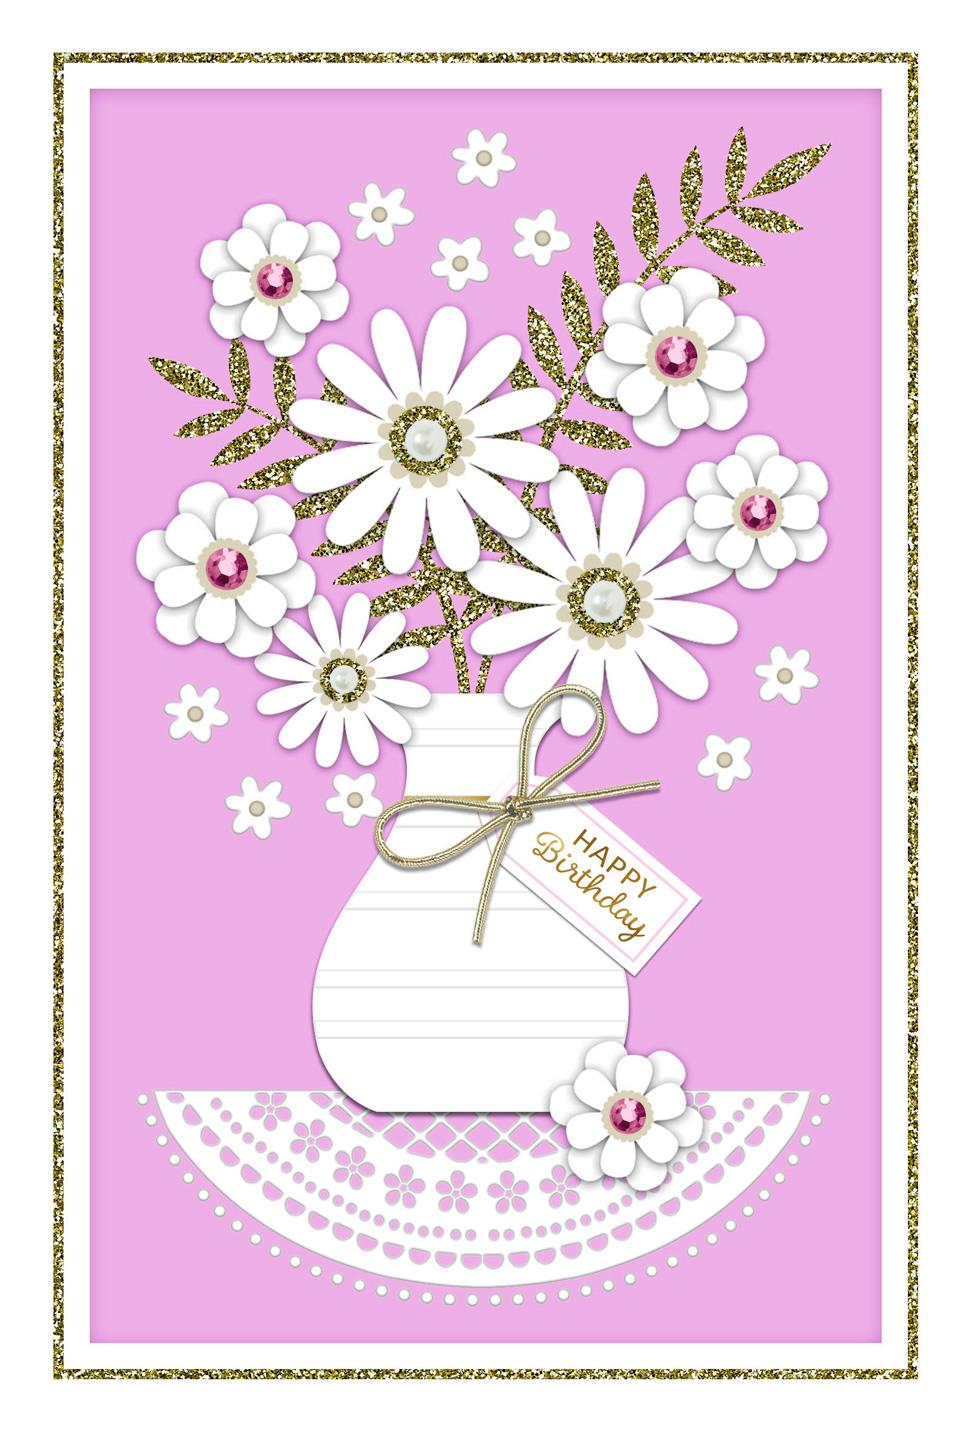 Bedazzled flower bouquet birthday card greeting cards Hallmark flowers